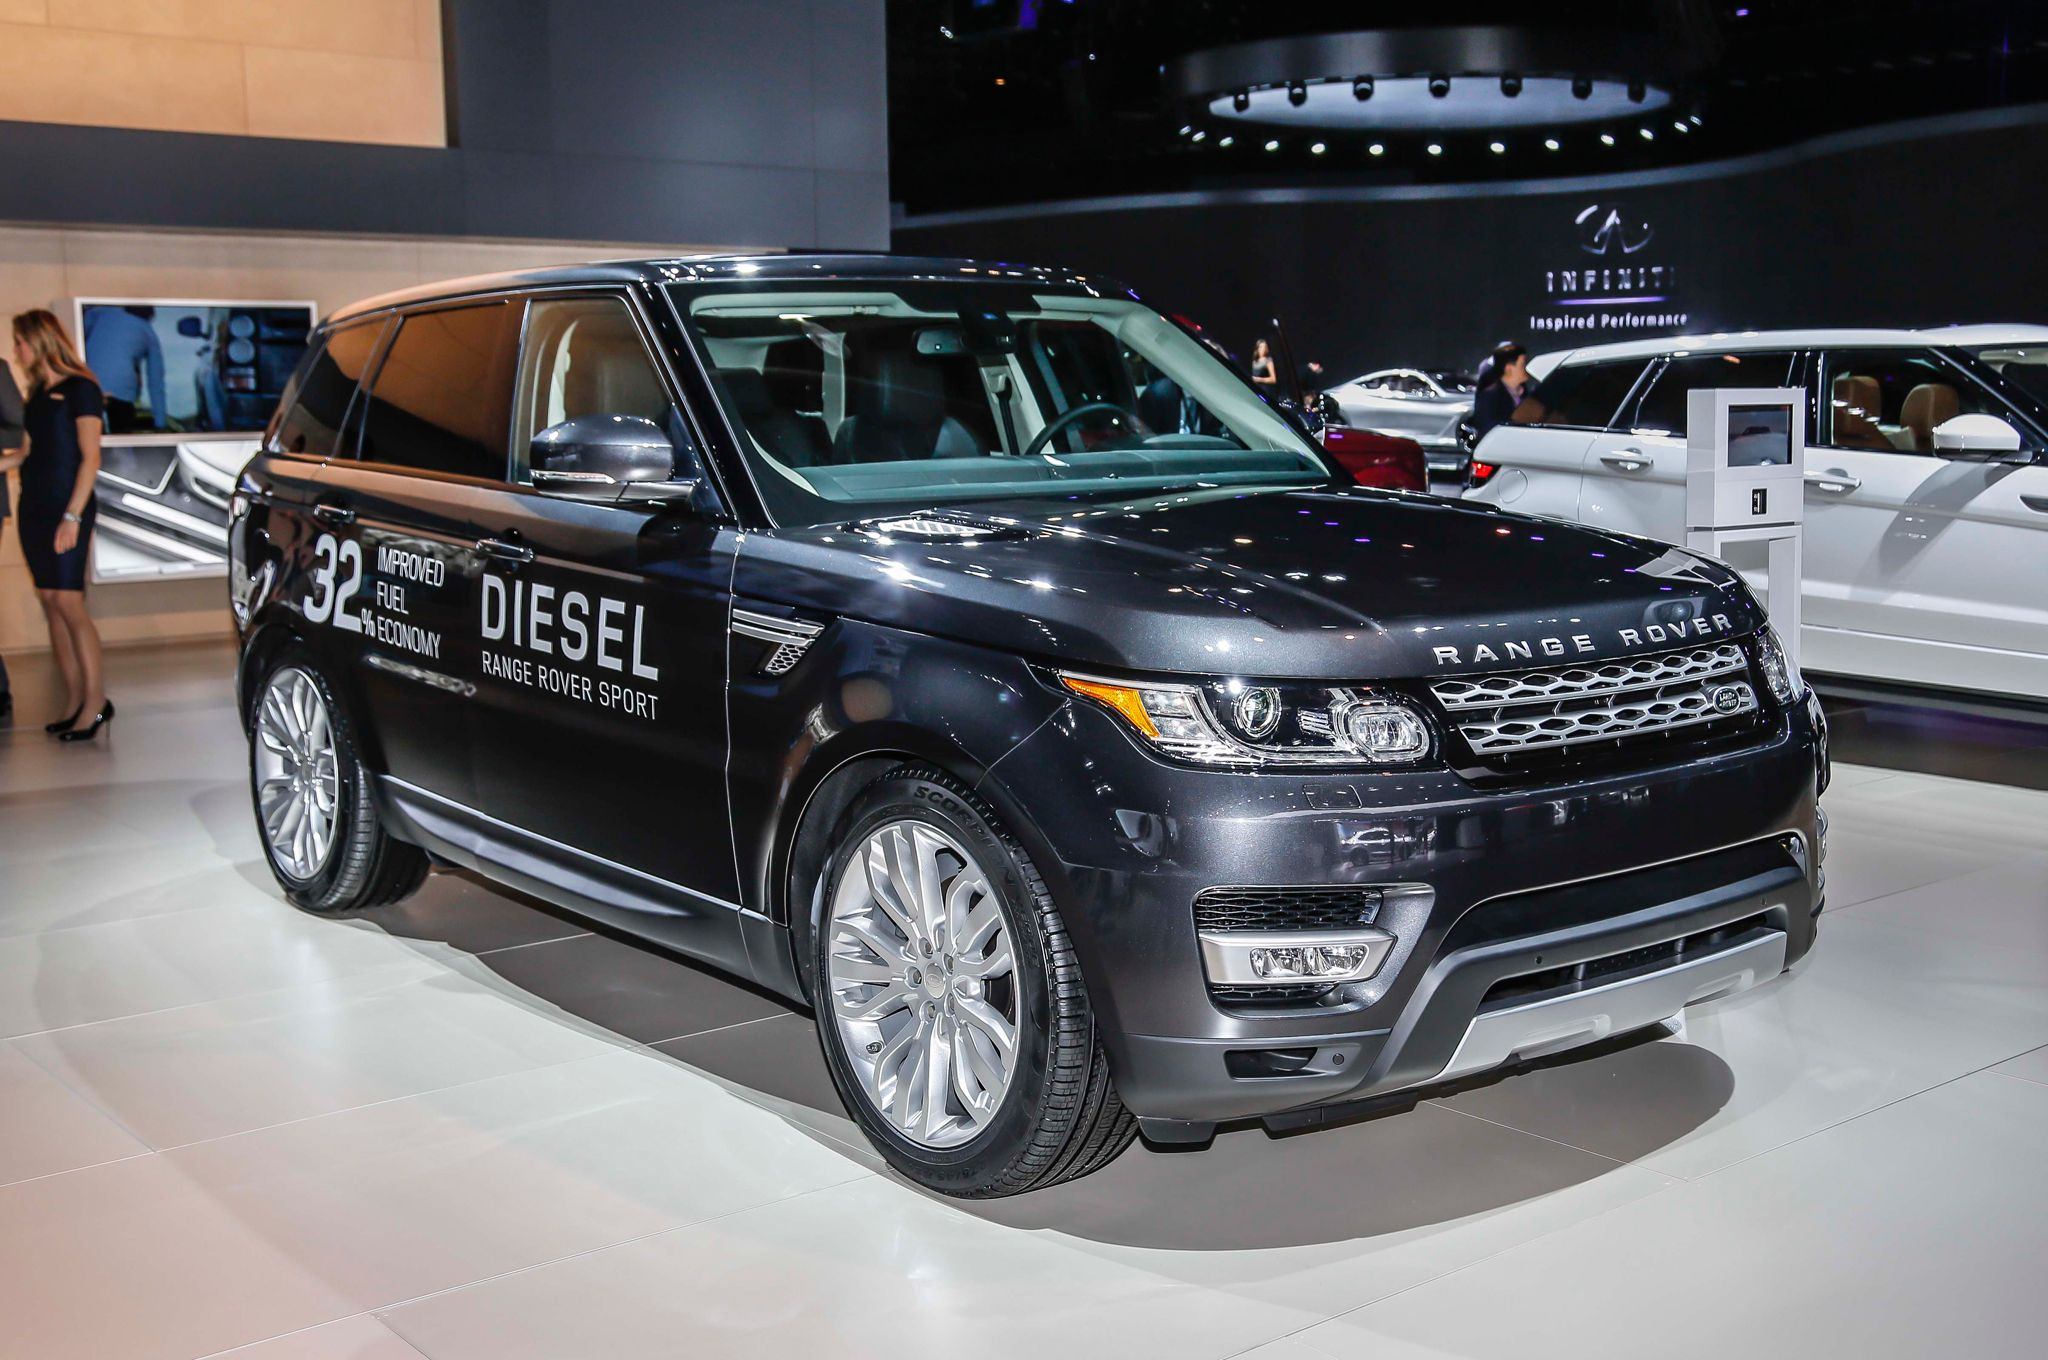 The 2015 land rover range rover sport delivers the luxury and